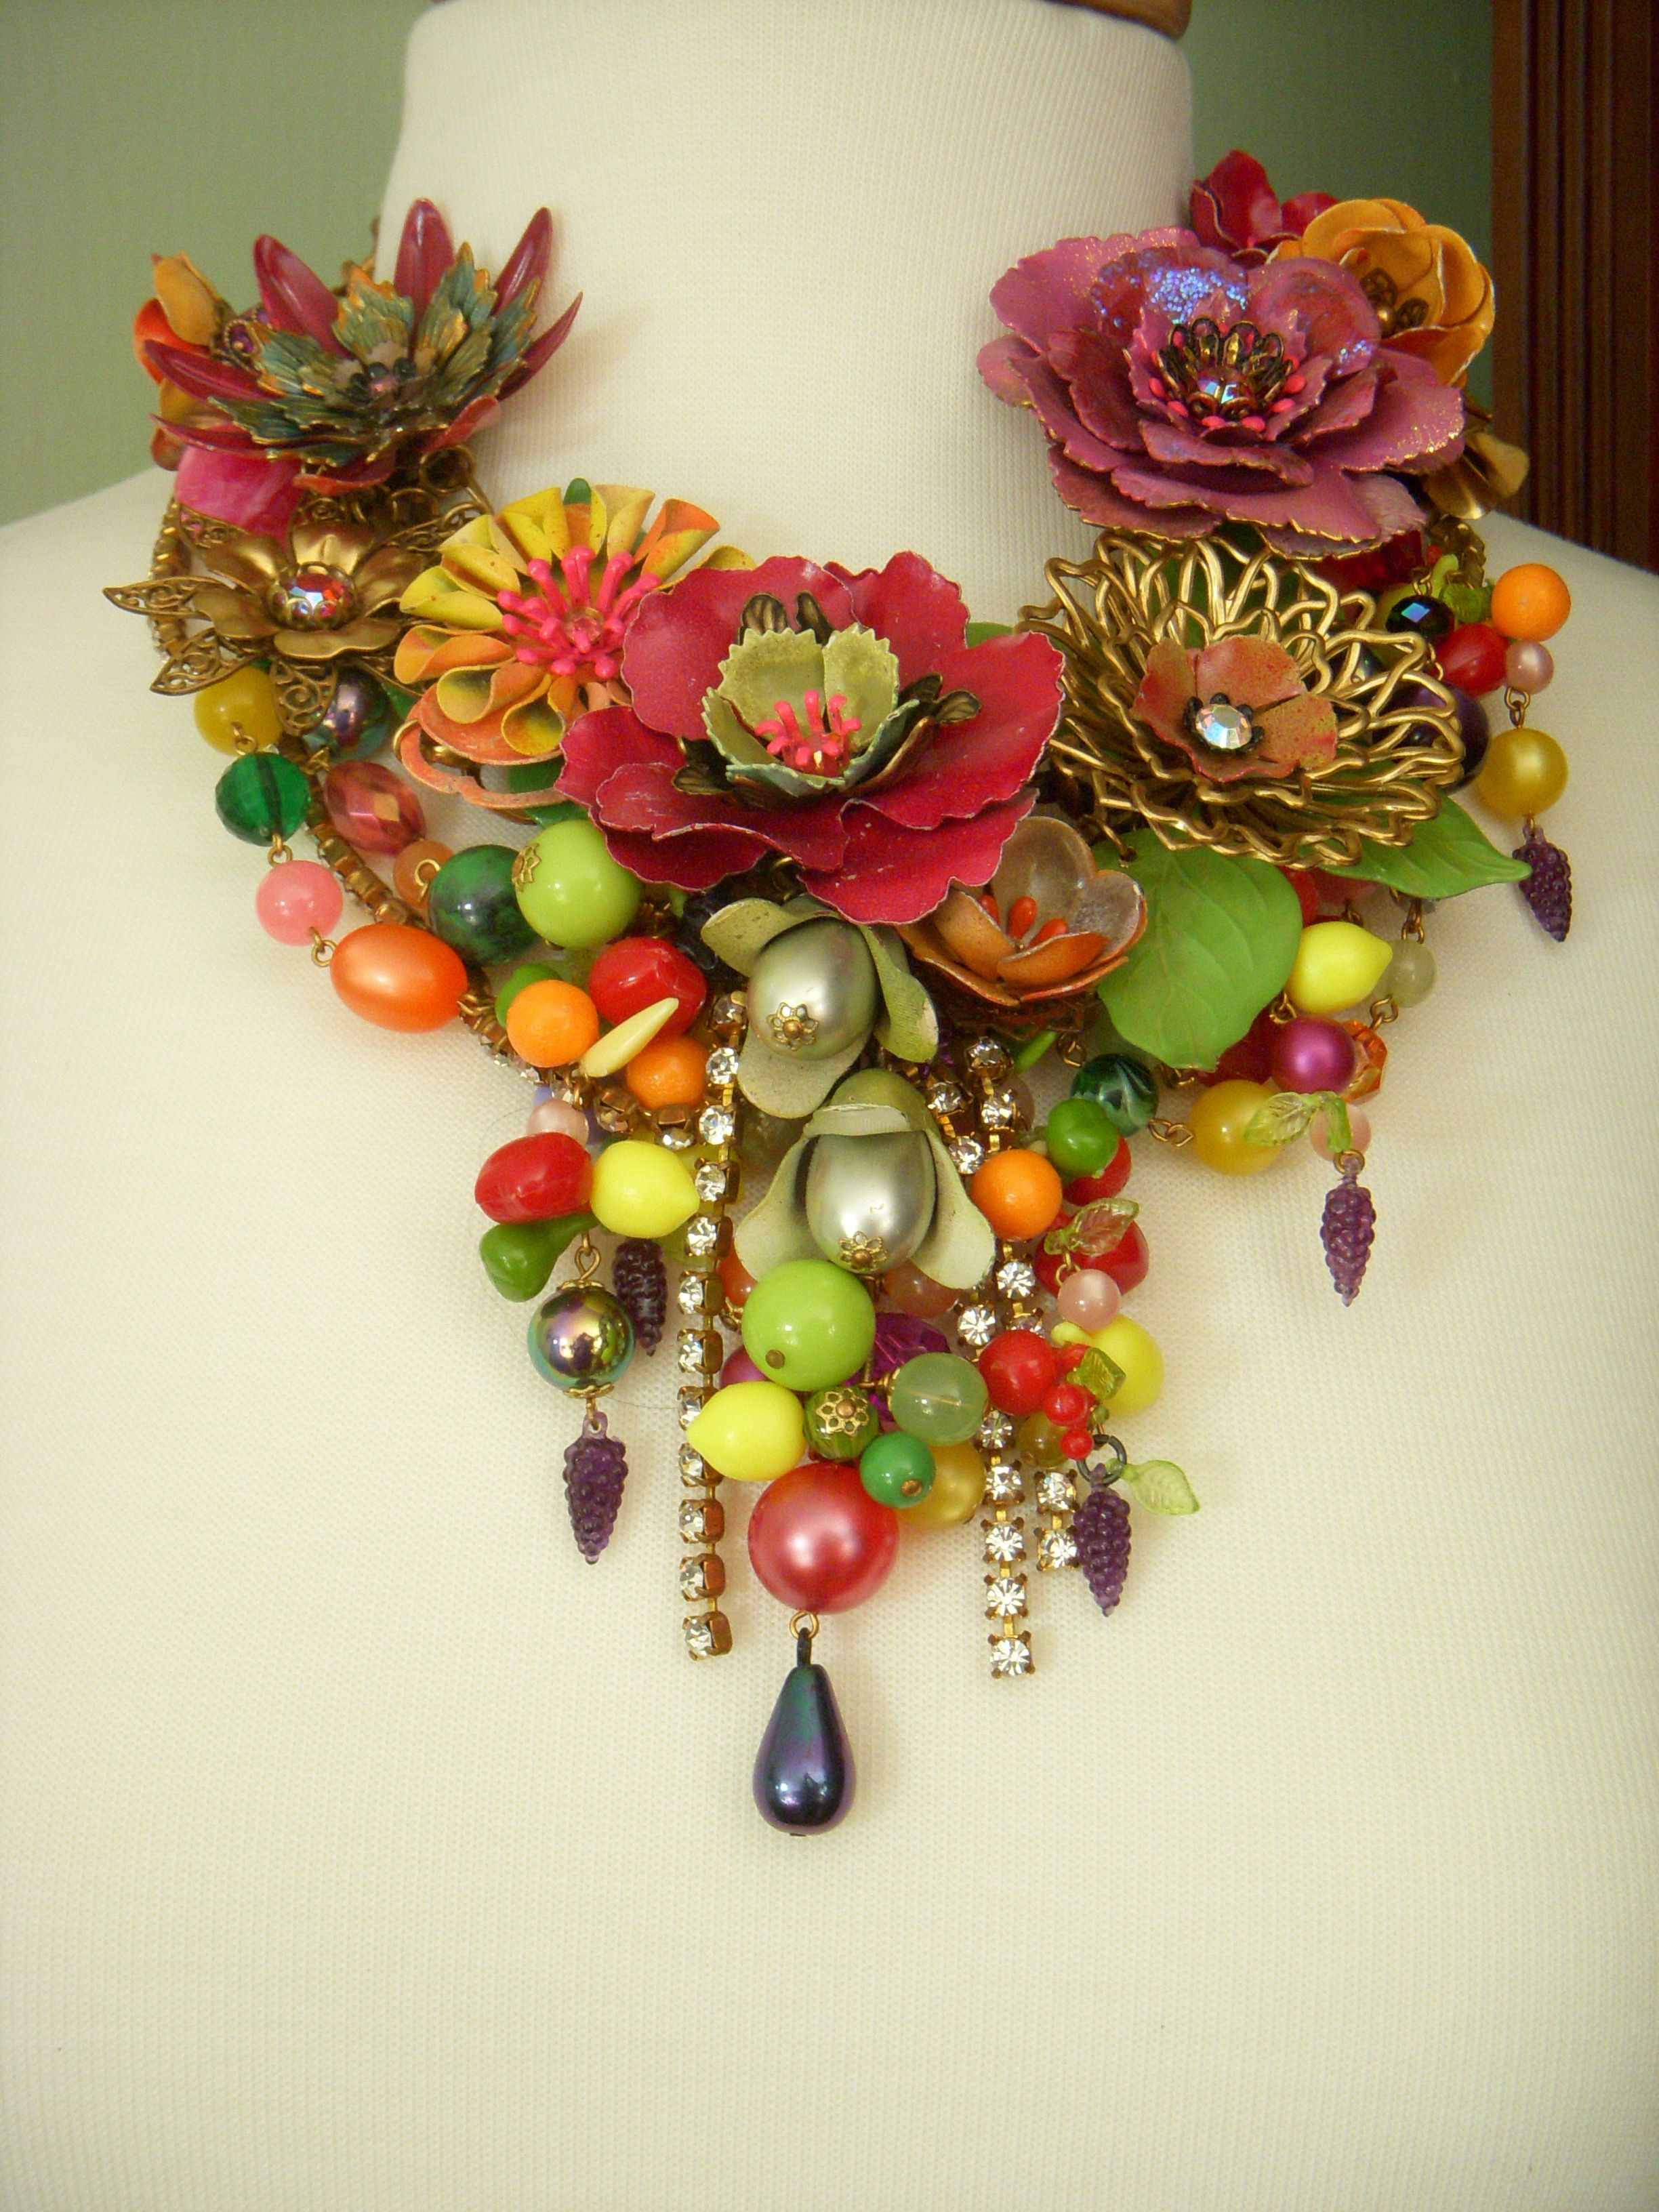 This gorgeous confection was made by Wendy Baker, who is famous for this style and one of the first to bring our attention to it.  I consider it a work of art.